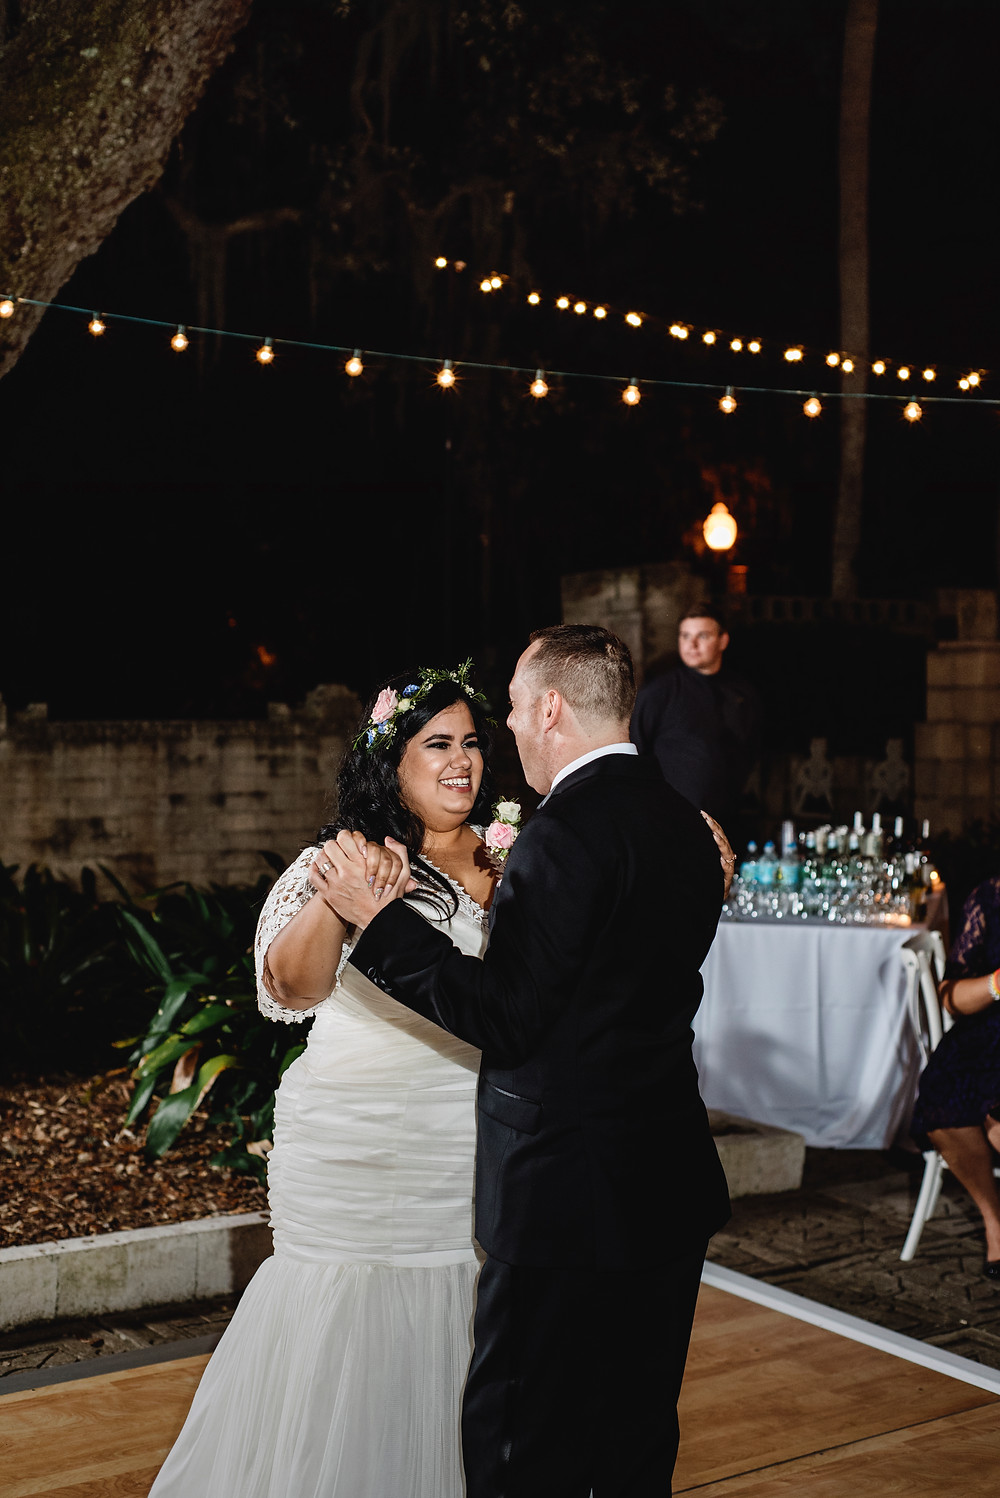 Orlando Wedding Photographer, The Maitland Art Center